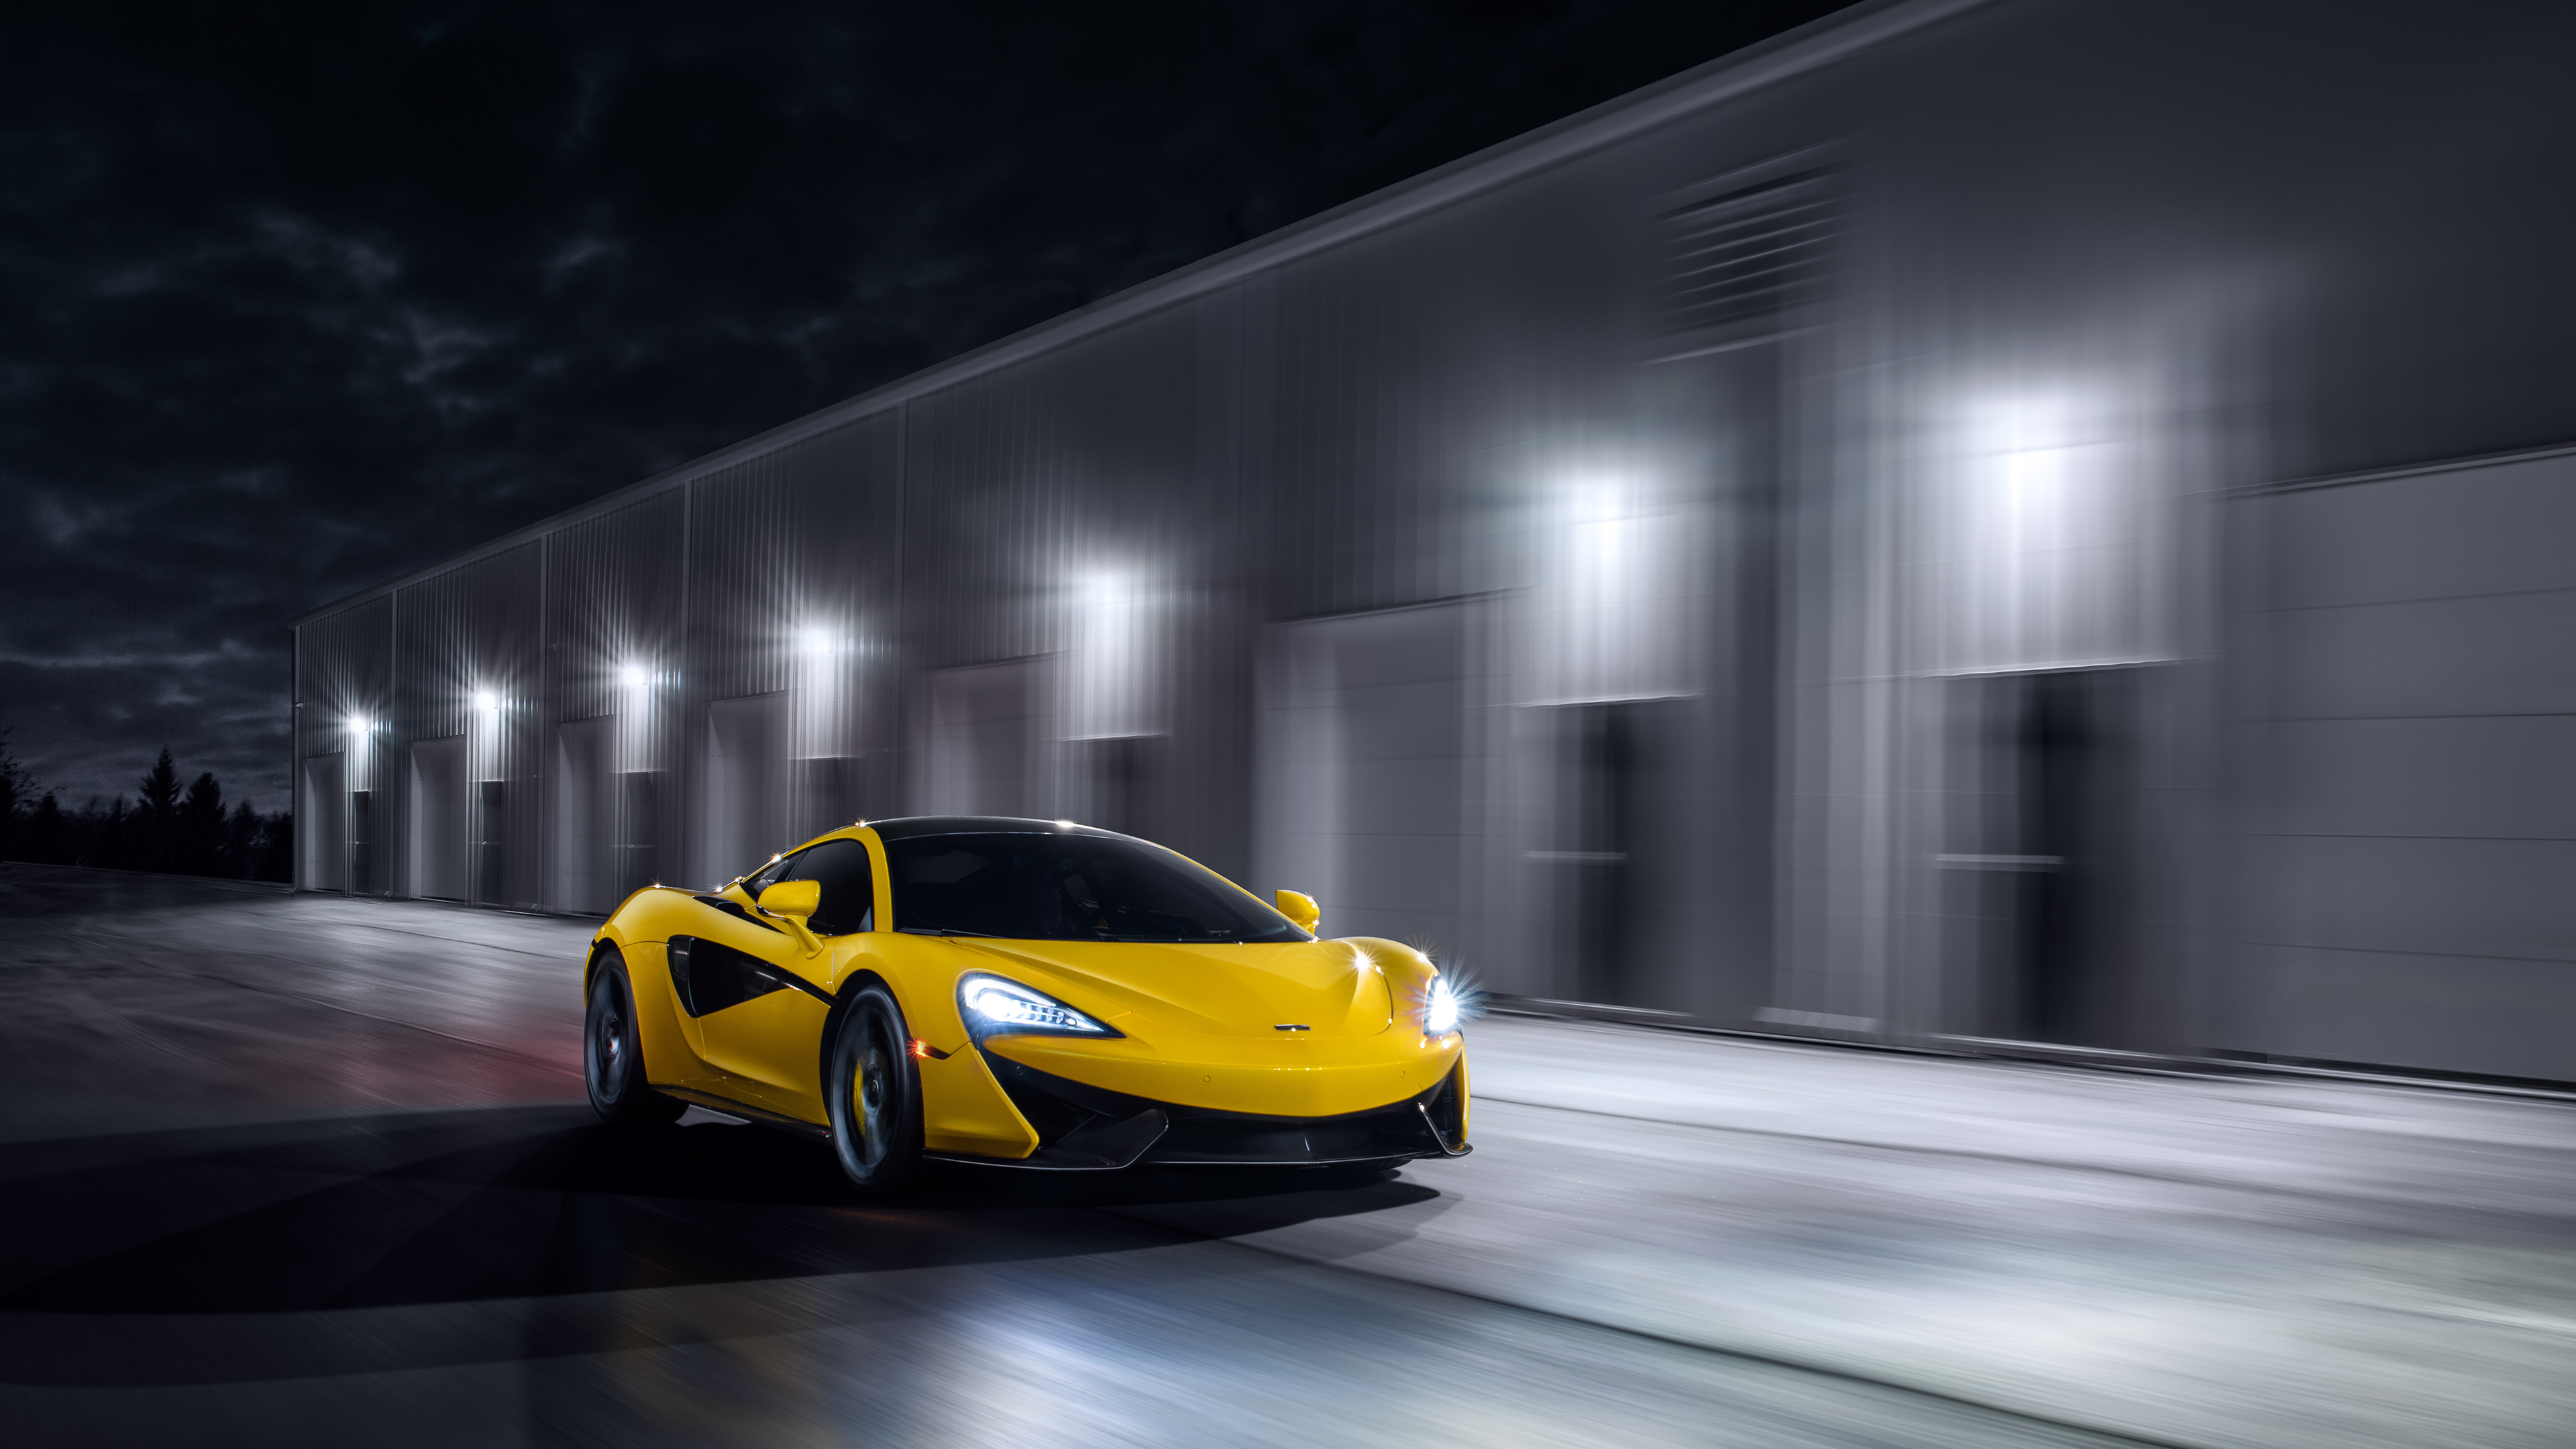 mclaren 570s 4k 1553075808 - McLaren 570s 4k - mclaren wallpapers, mclaren 570s spider wallpapers, hd-wallpapers, cars wallpapers, 4k-wallpapers, 2019 cars wallpapers